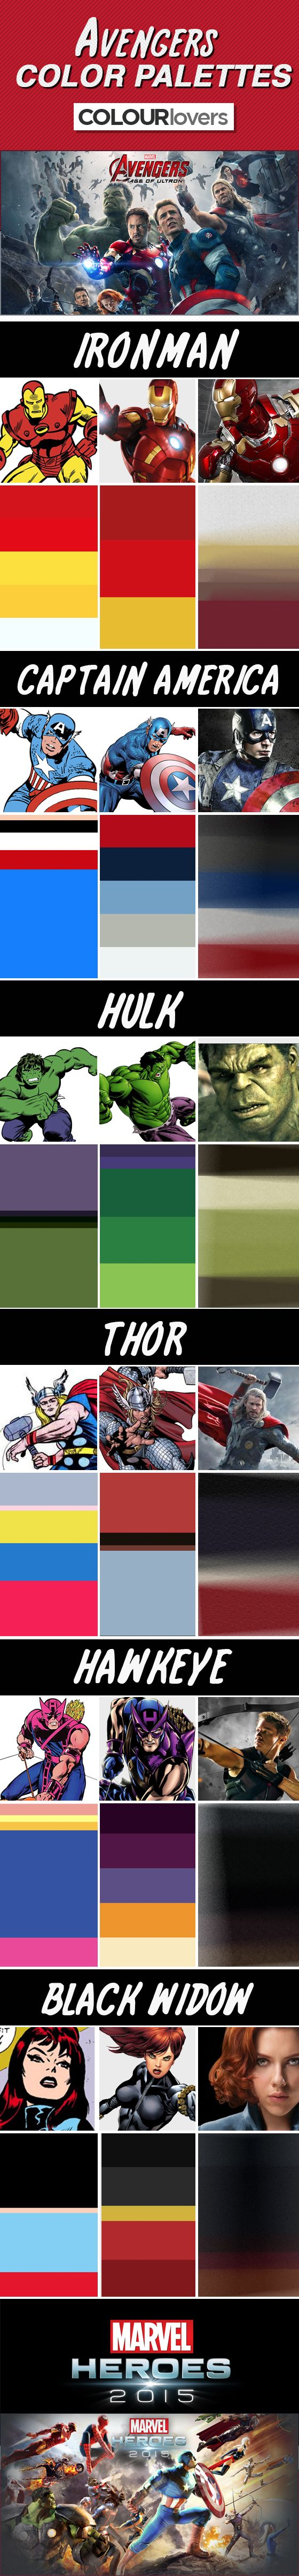 Web Blog / Marvel's Avengers 2 - Character Color Palettes [ Infographic ] by COLOURlovers :: COLOURlovers